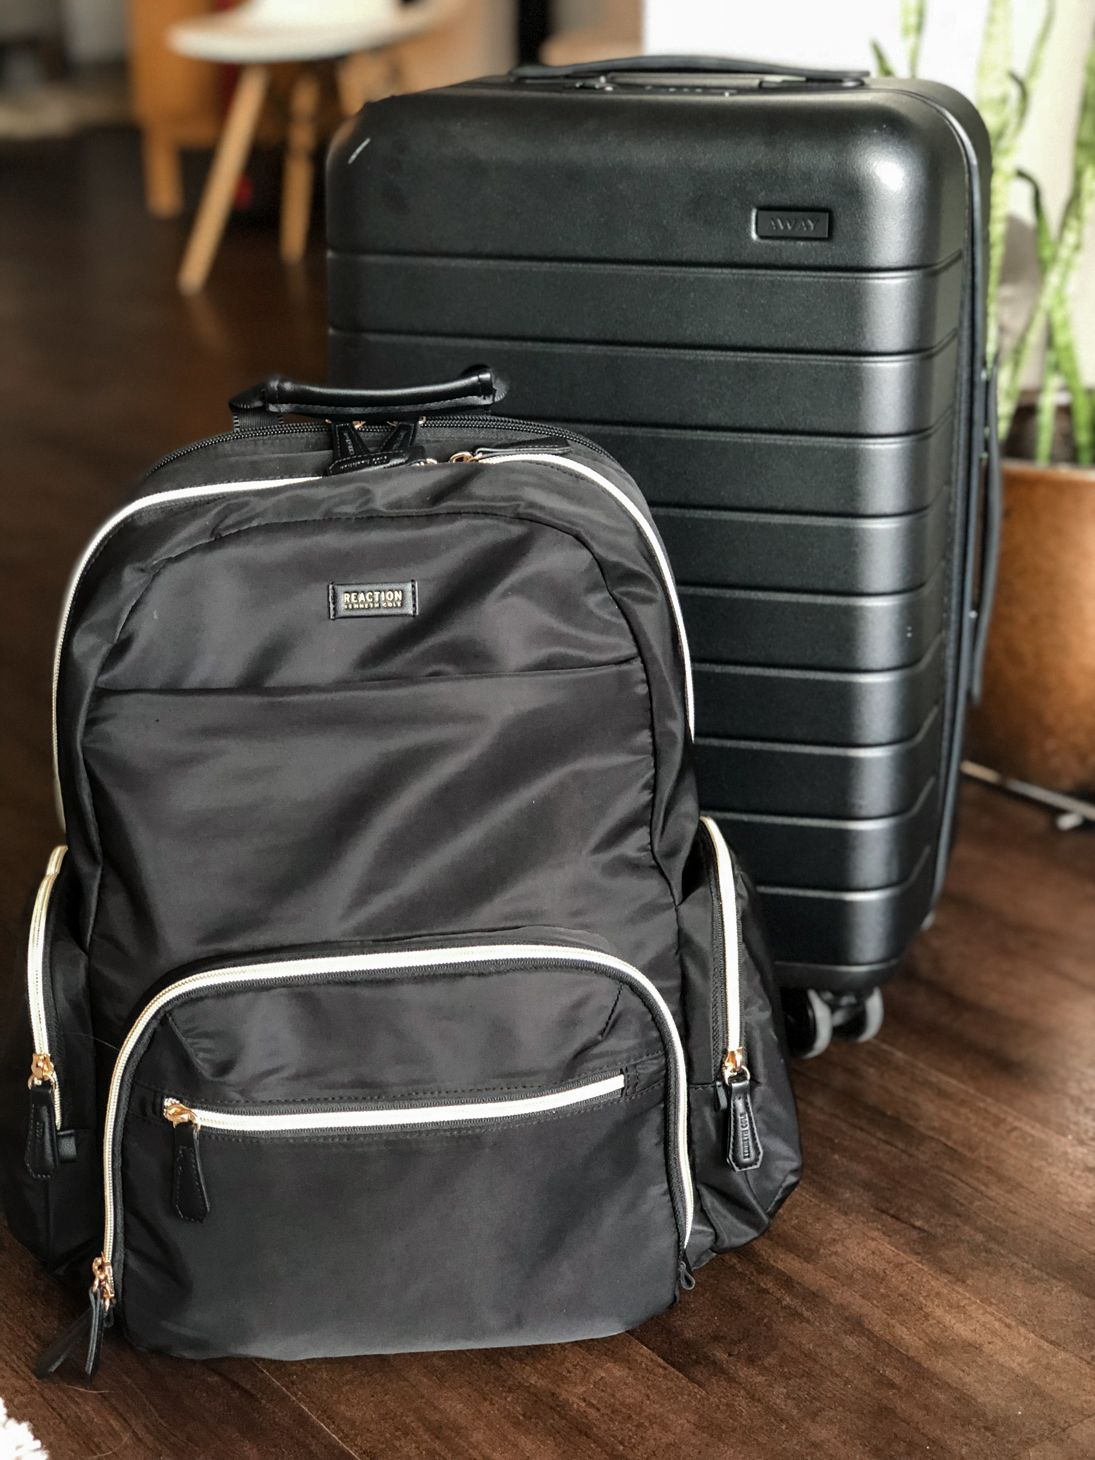 away carry-on suitcase & travel backpack review | wanderlust